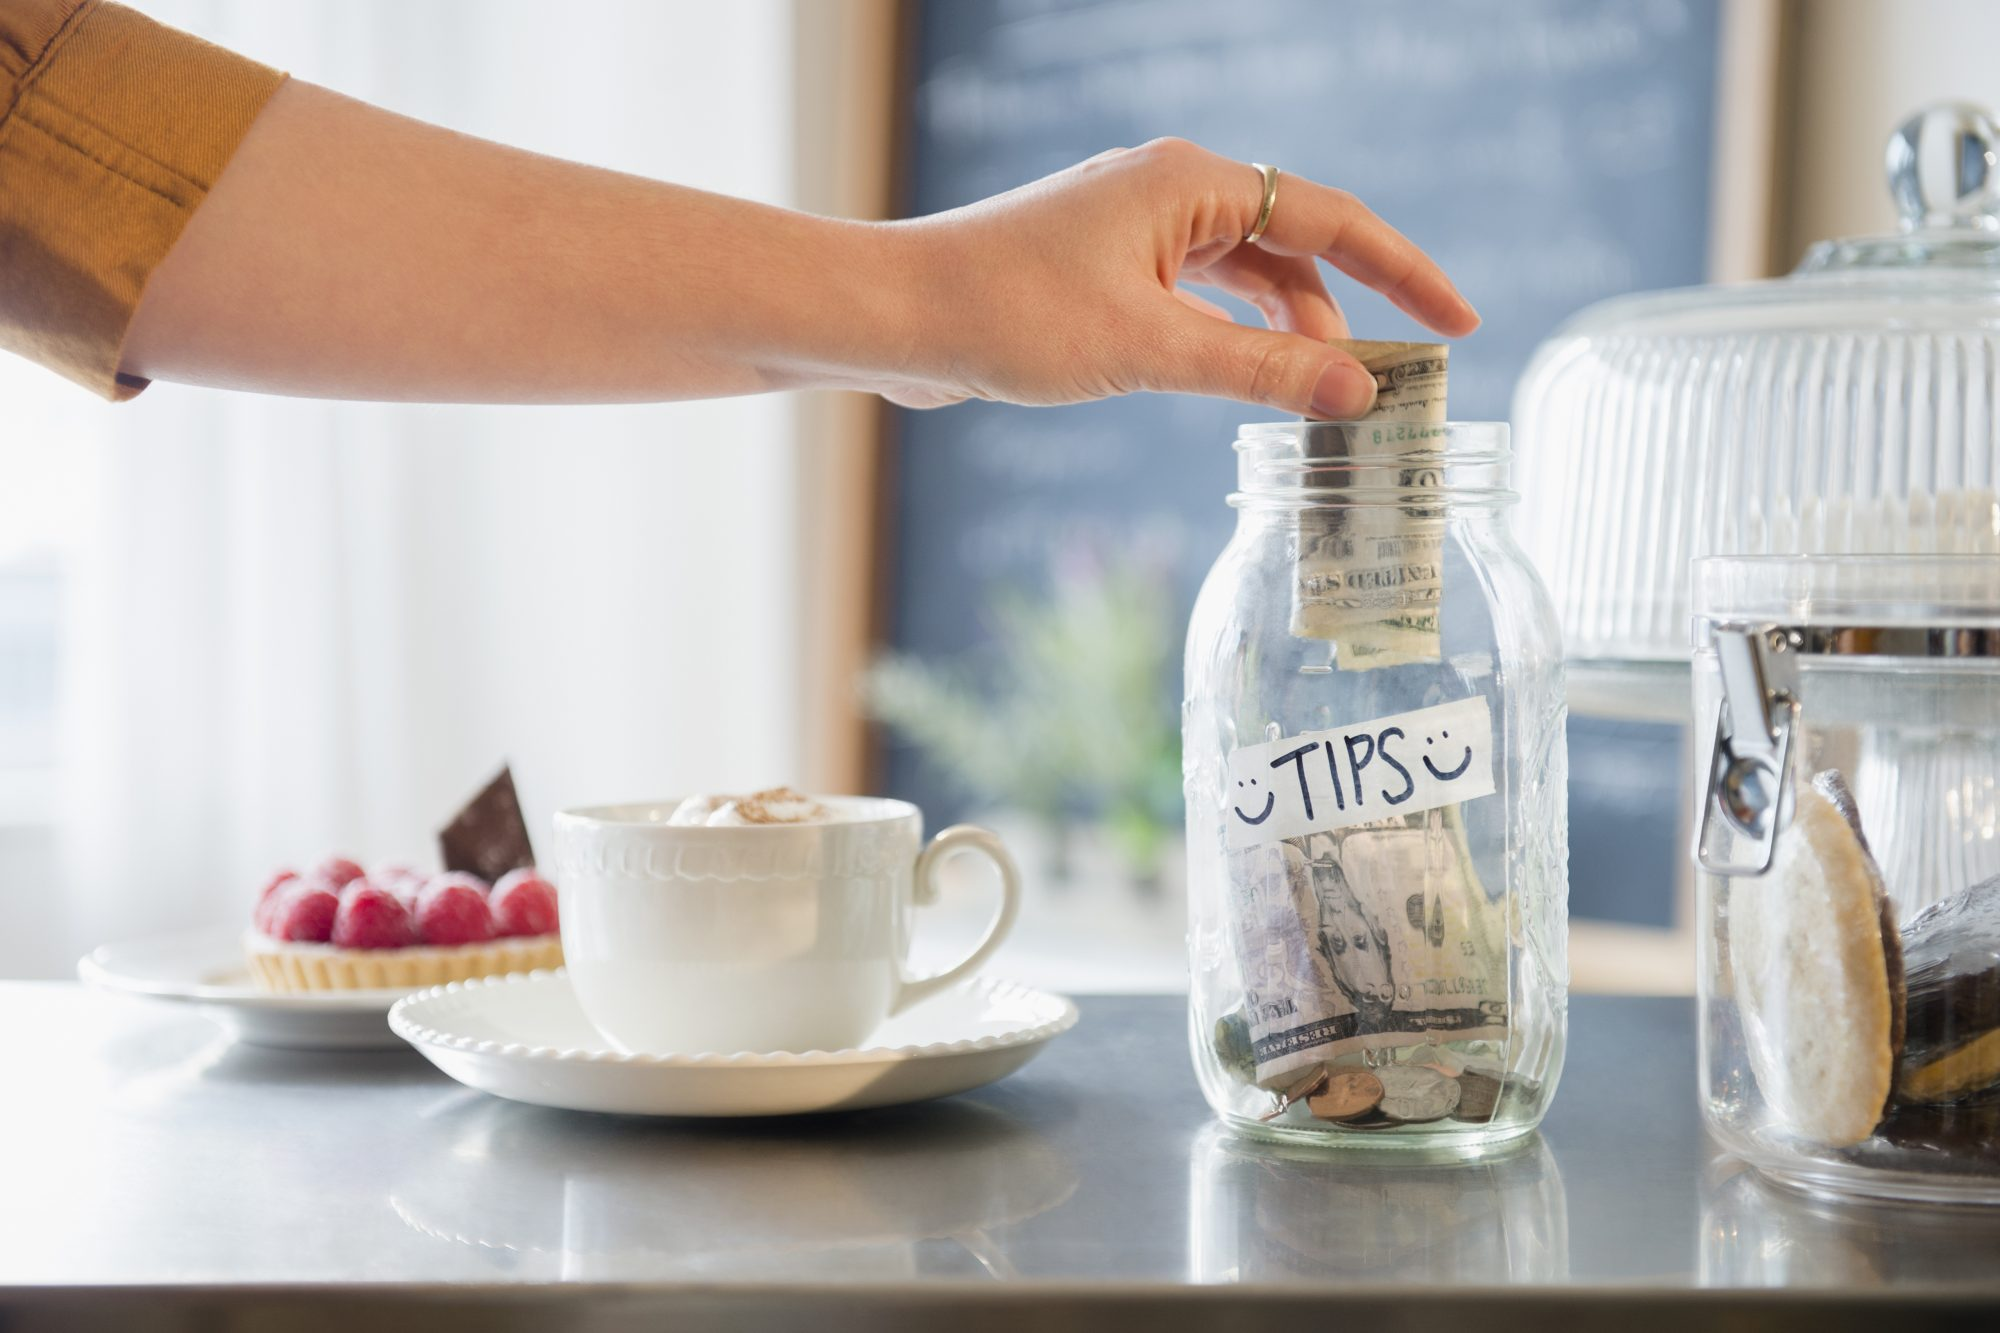 tip jar: support small businesses while social distancing